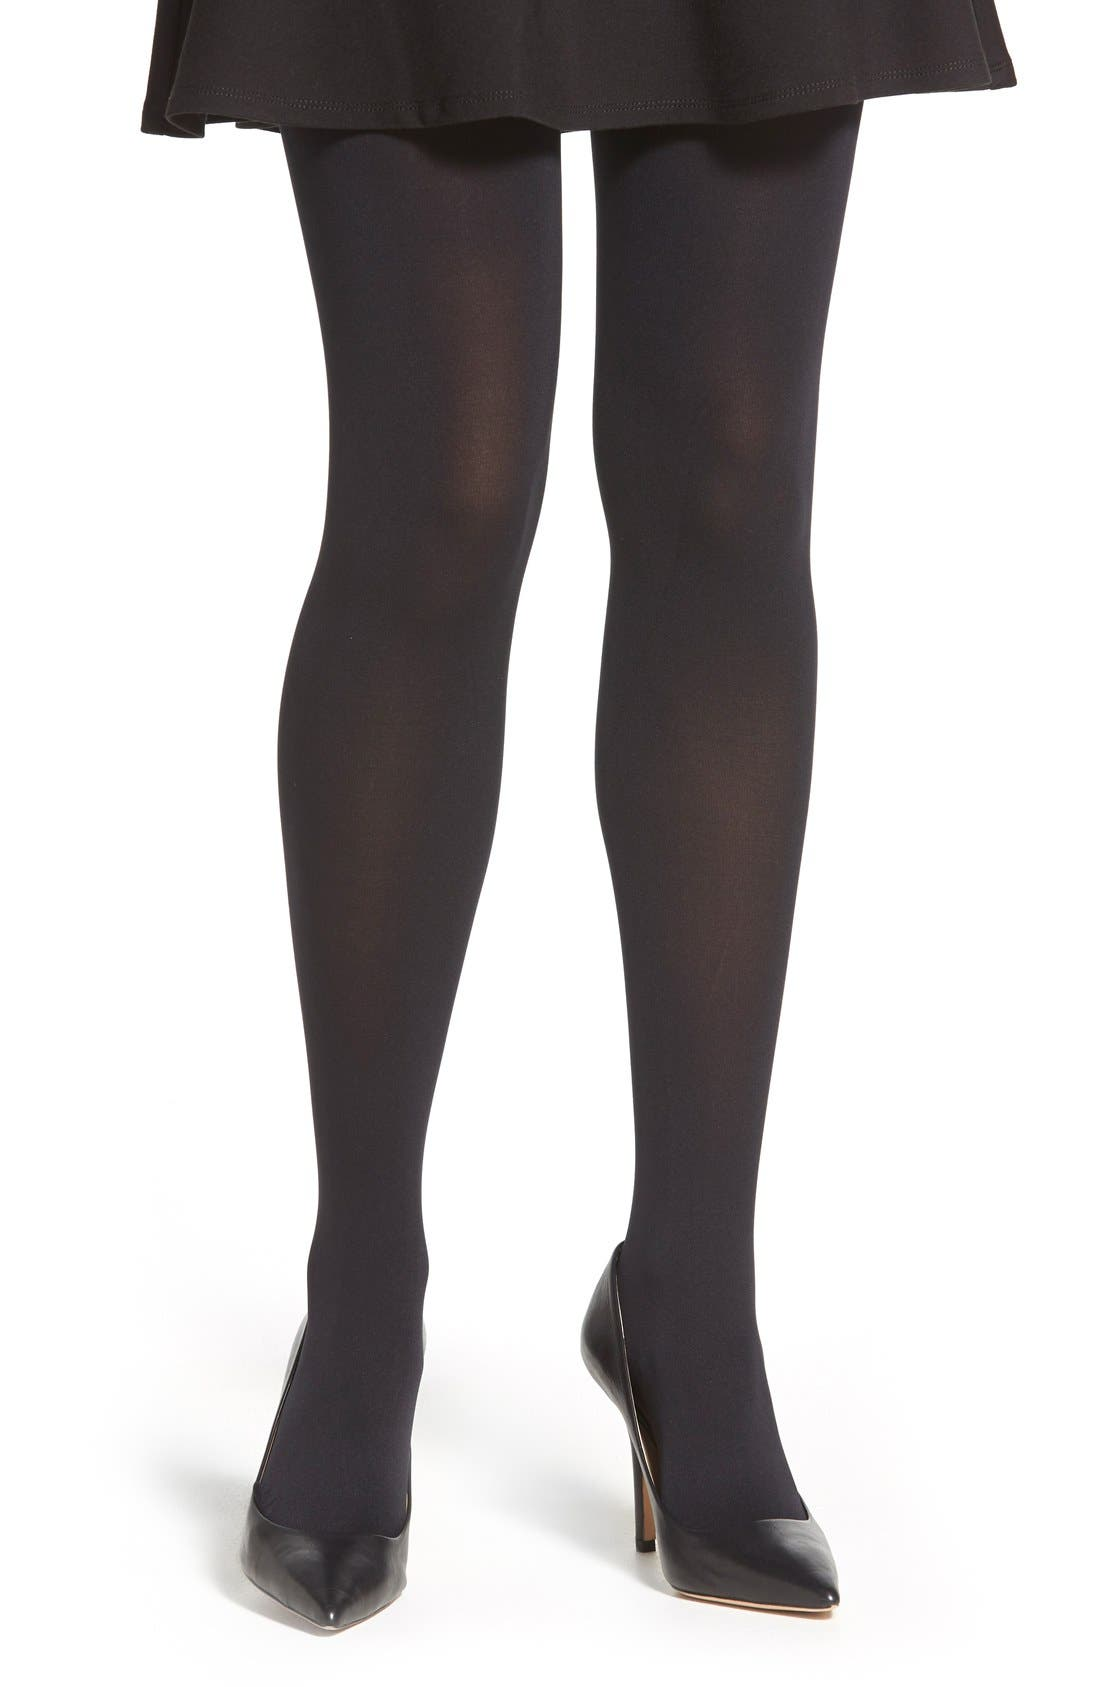 Alternate Image 1 Selected - Pretty Polly 'Legs on the Go' Tights